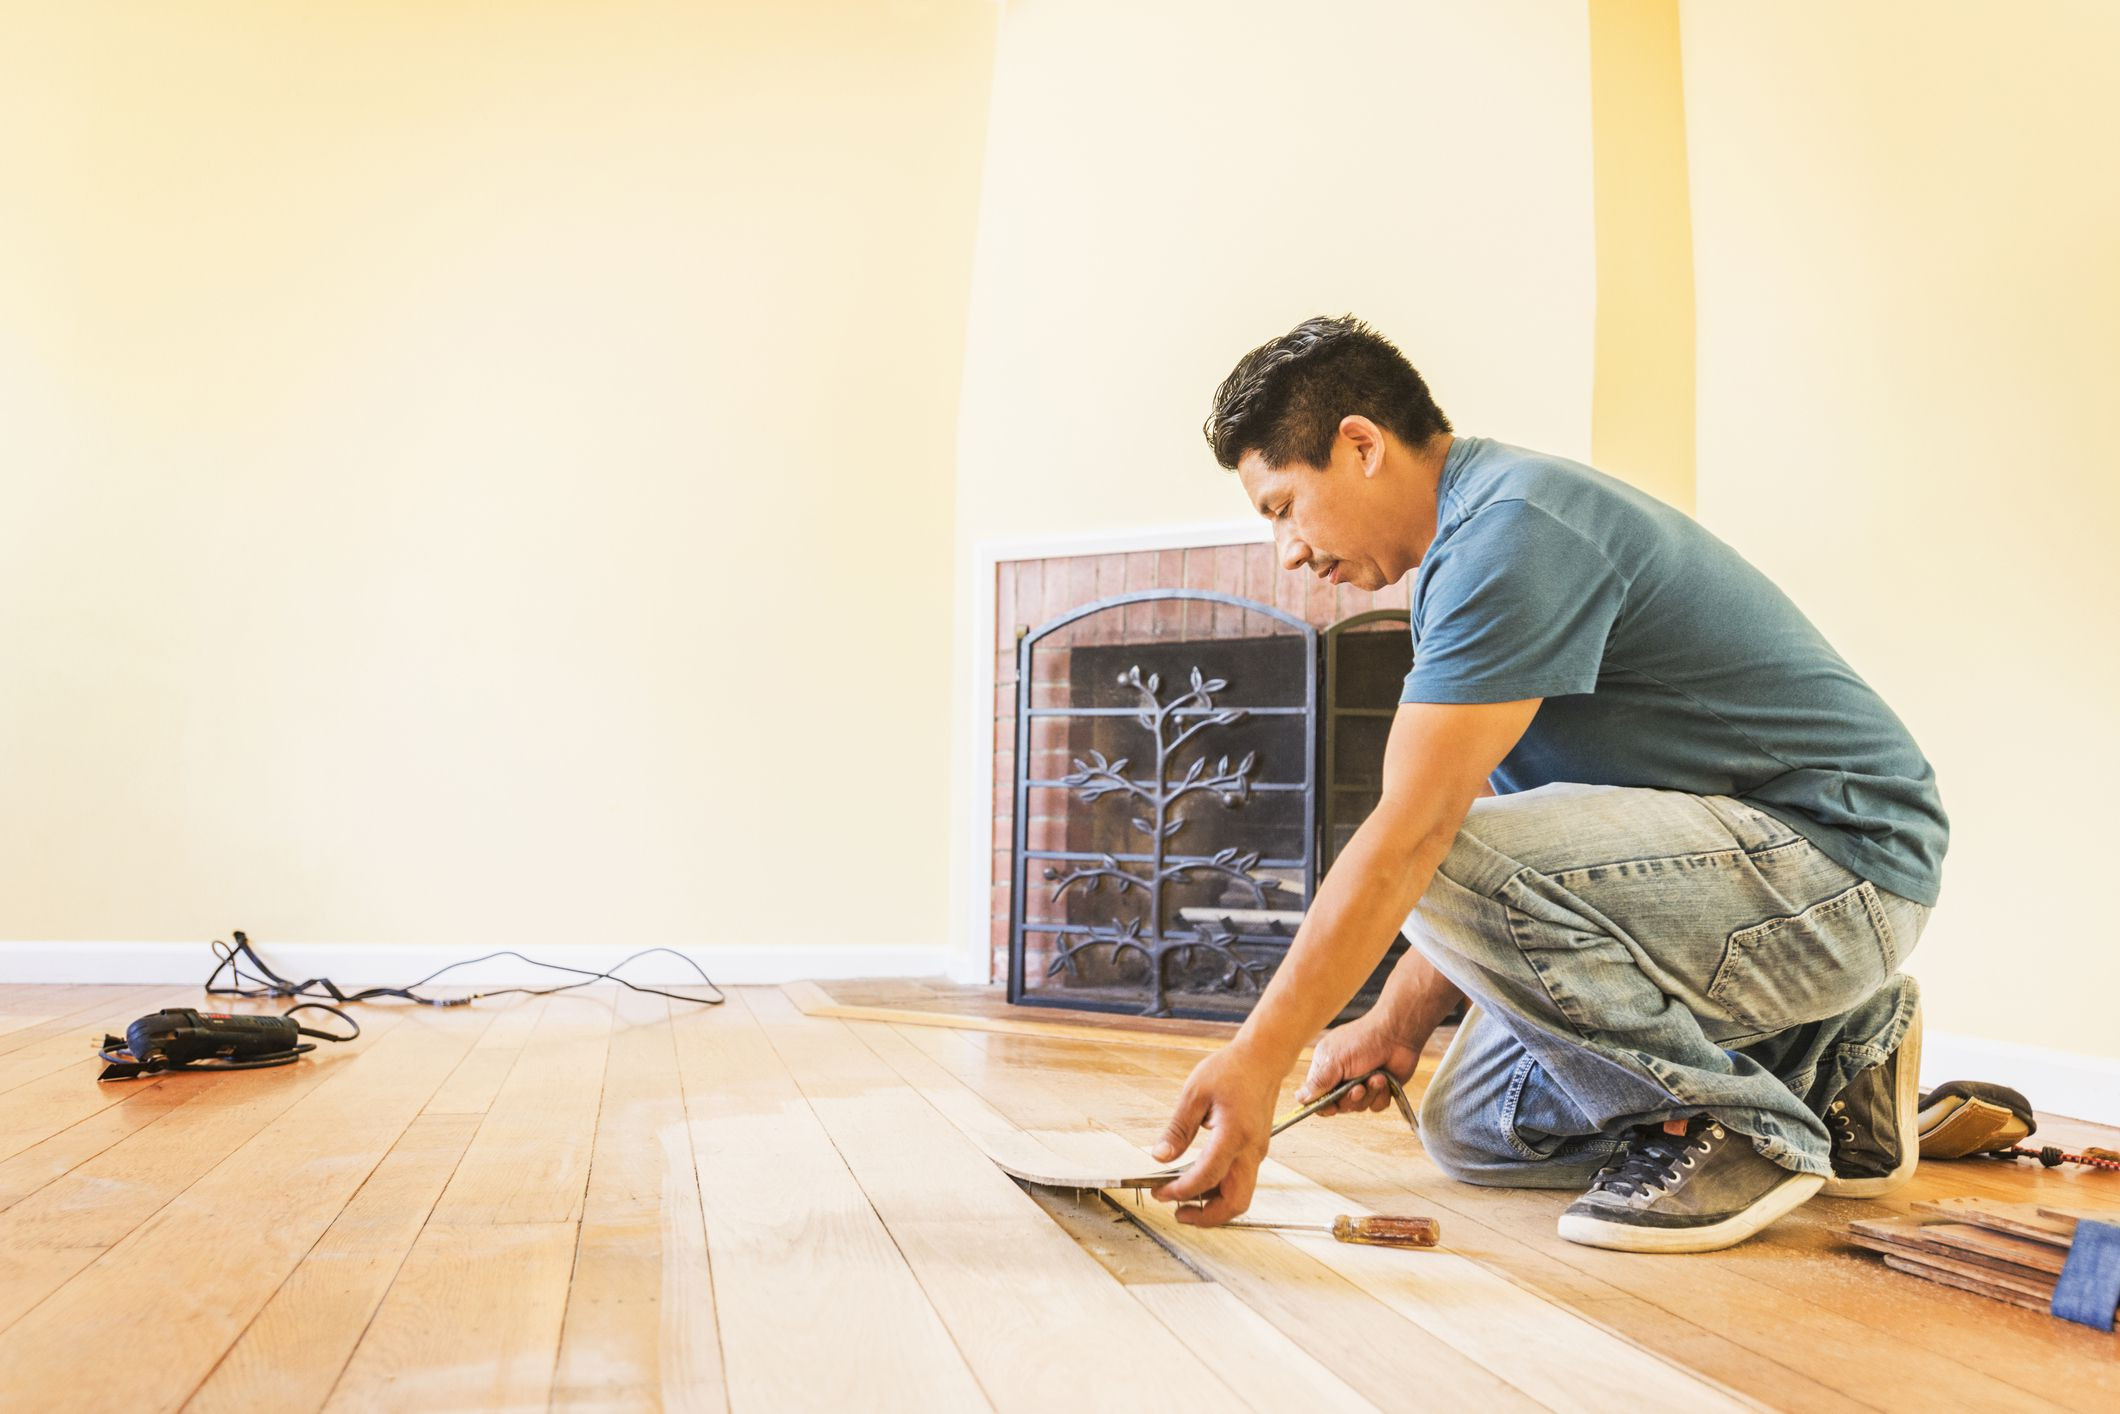 hardwood floor trim installation of hardwood installer how to hire and what to expect inside installing wood flooring 592016327 57af51a23df78cd39cfa08d9